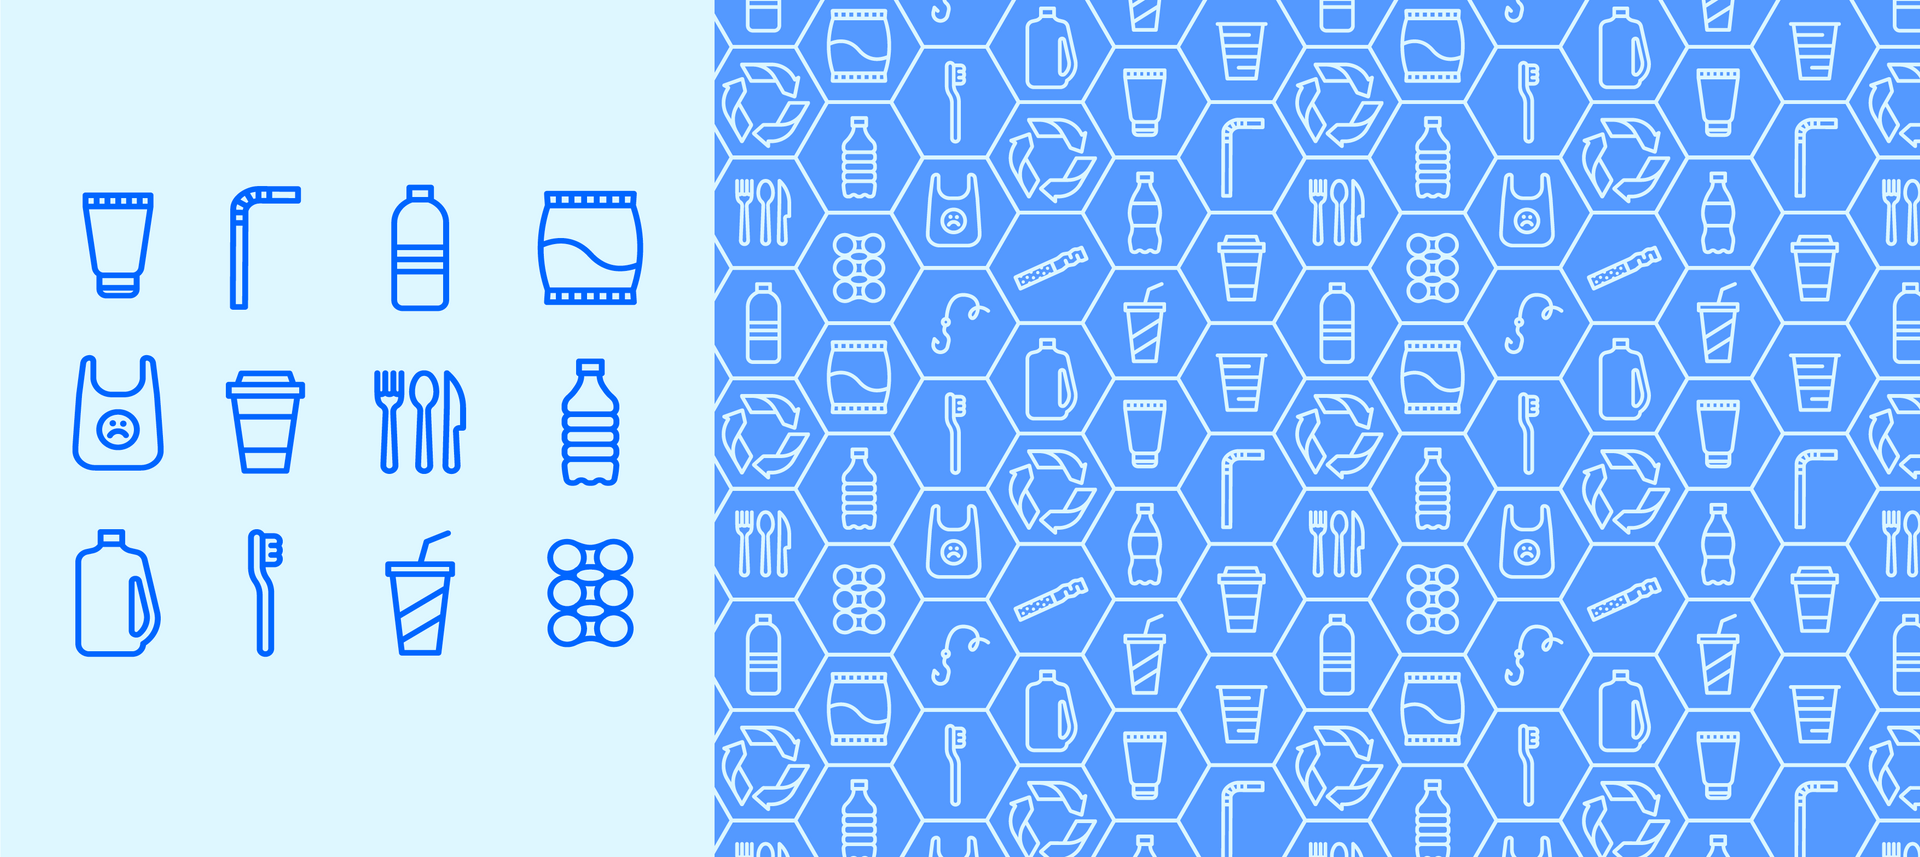 Iconography + Pattern